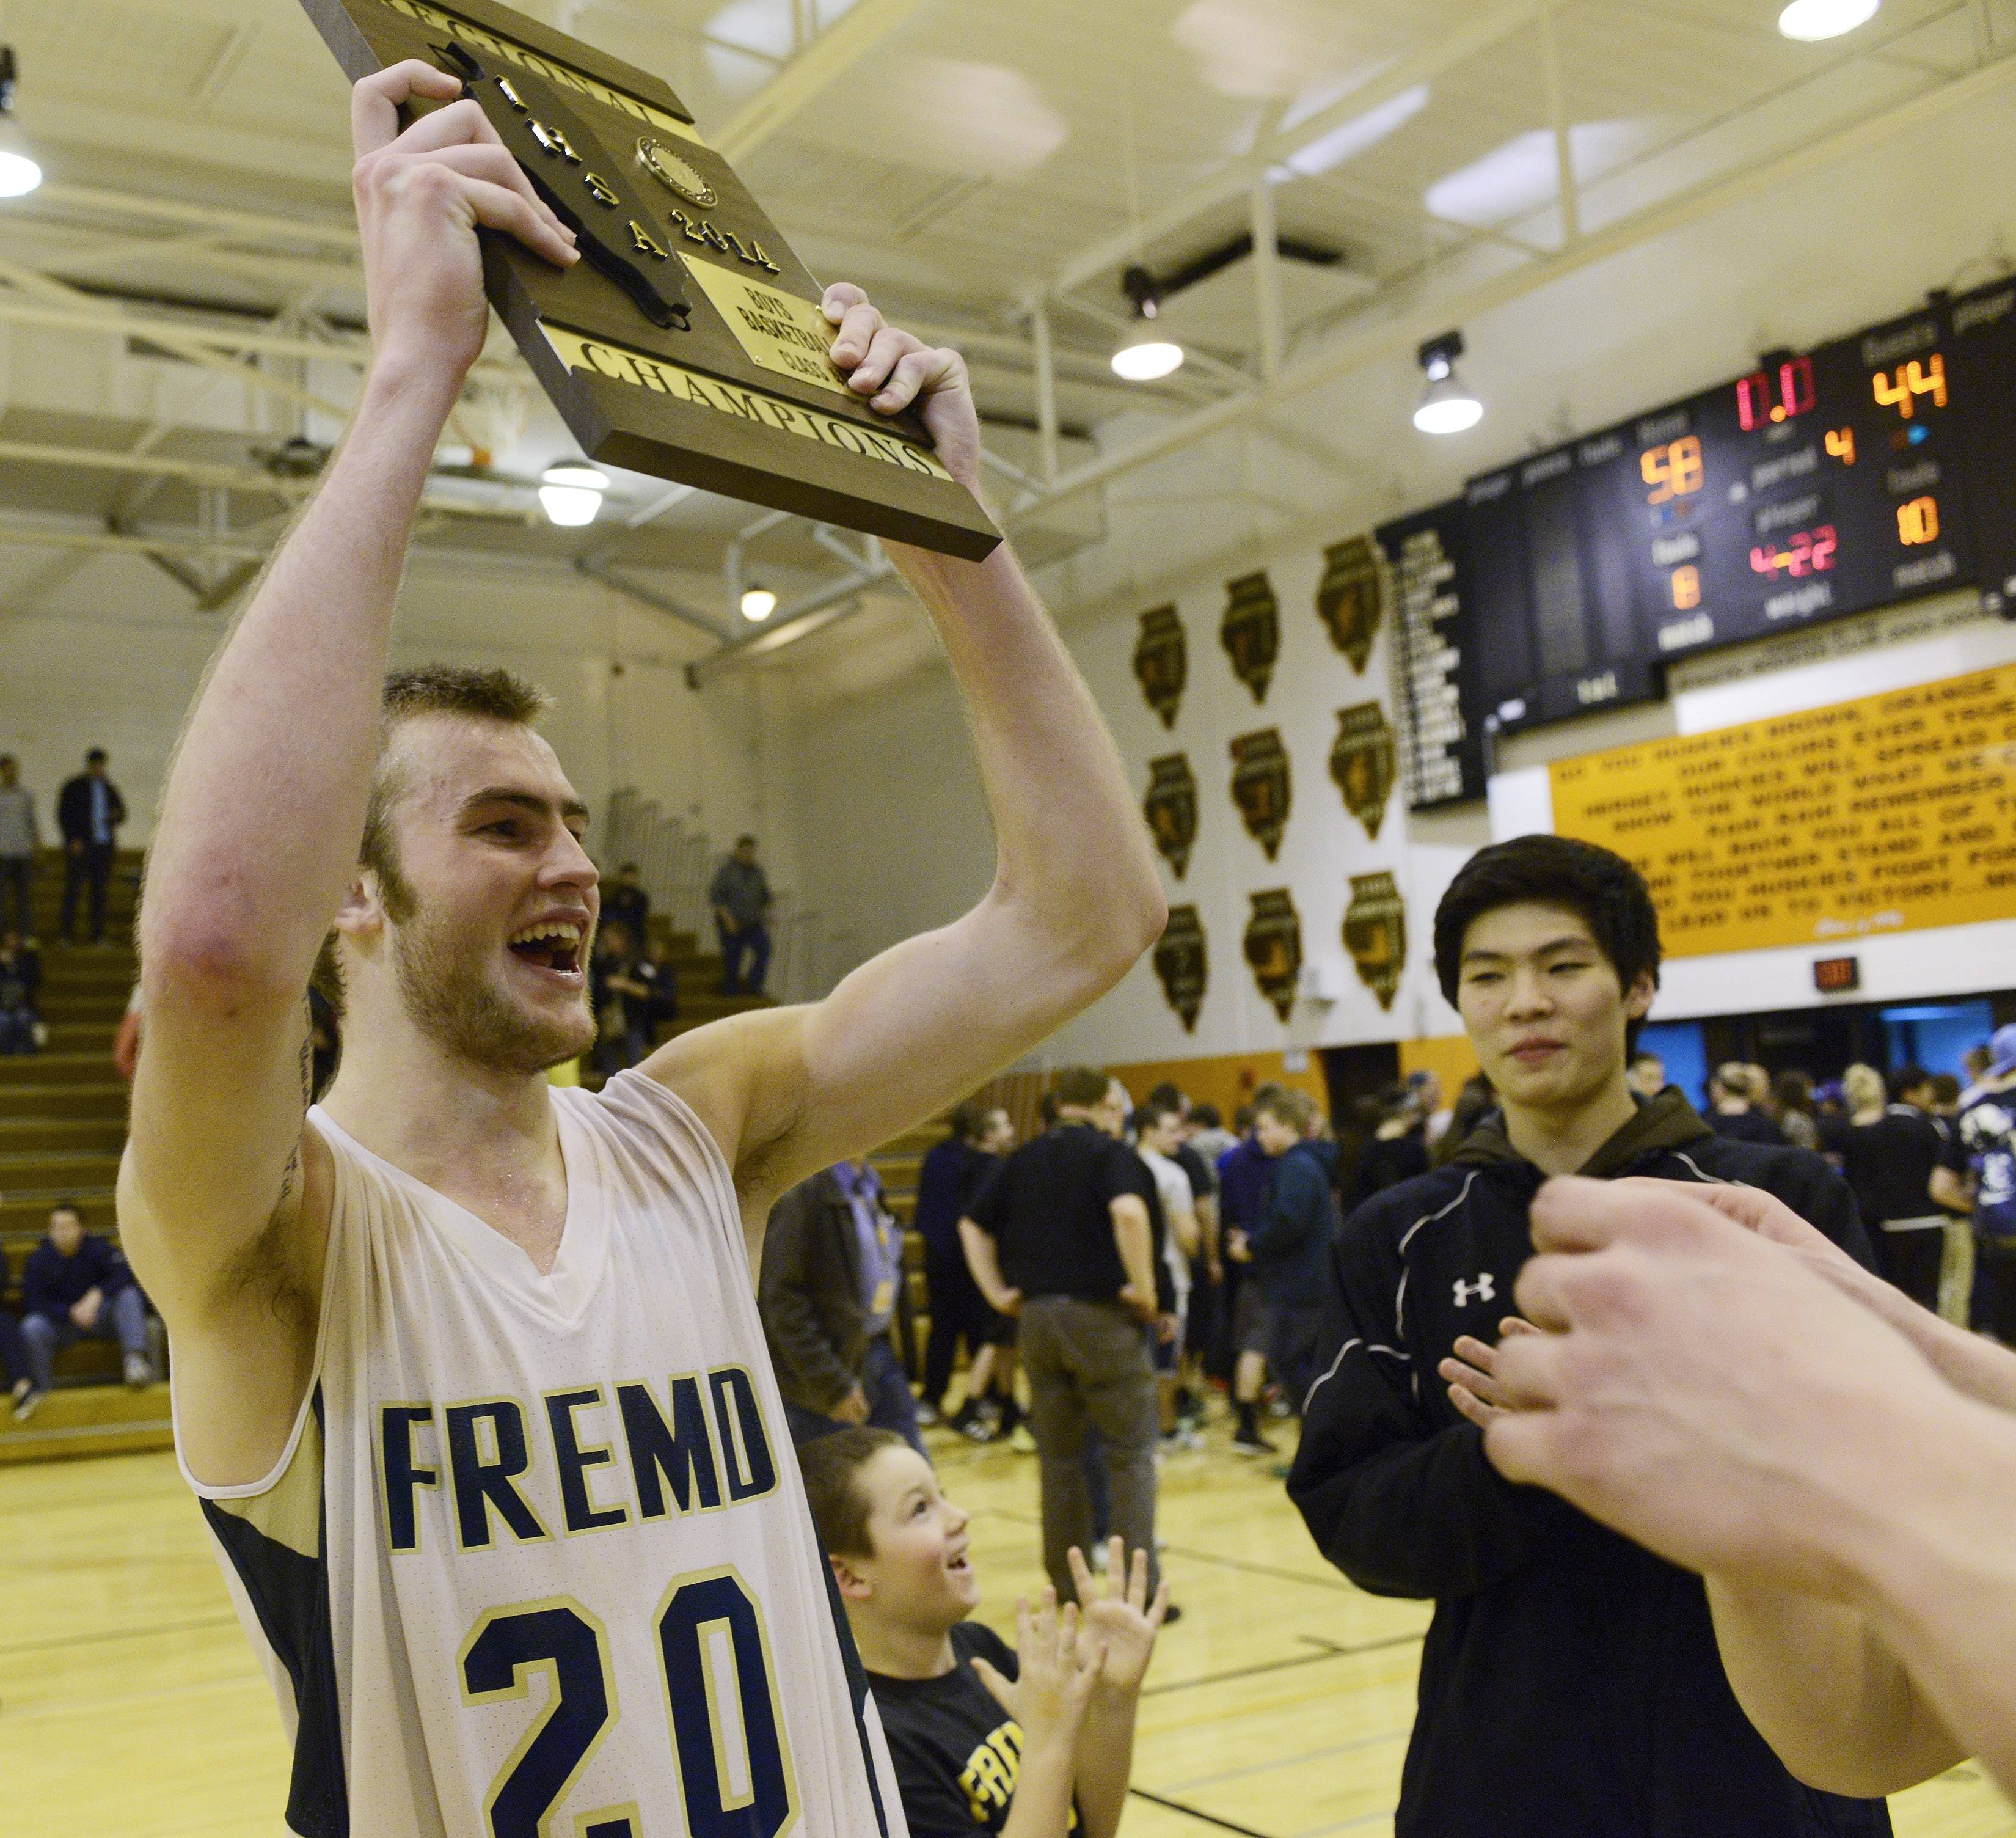 Fremd's Riley Glassmann holds up the championship plaque following Friday's 58-44 victory over Lake Zurich in the regional championship game at Hersey High School in Arlington Heights.